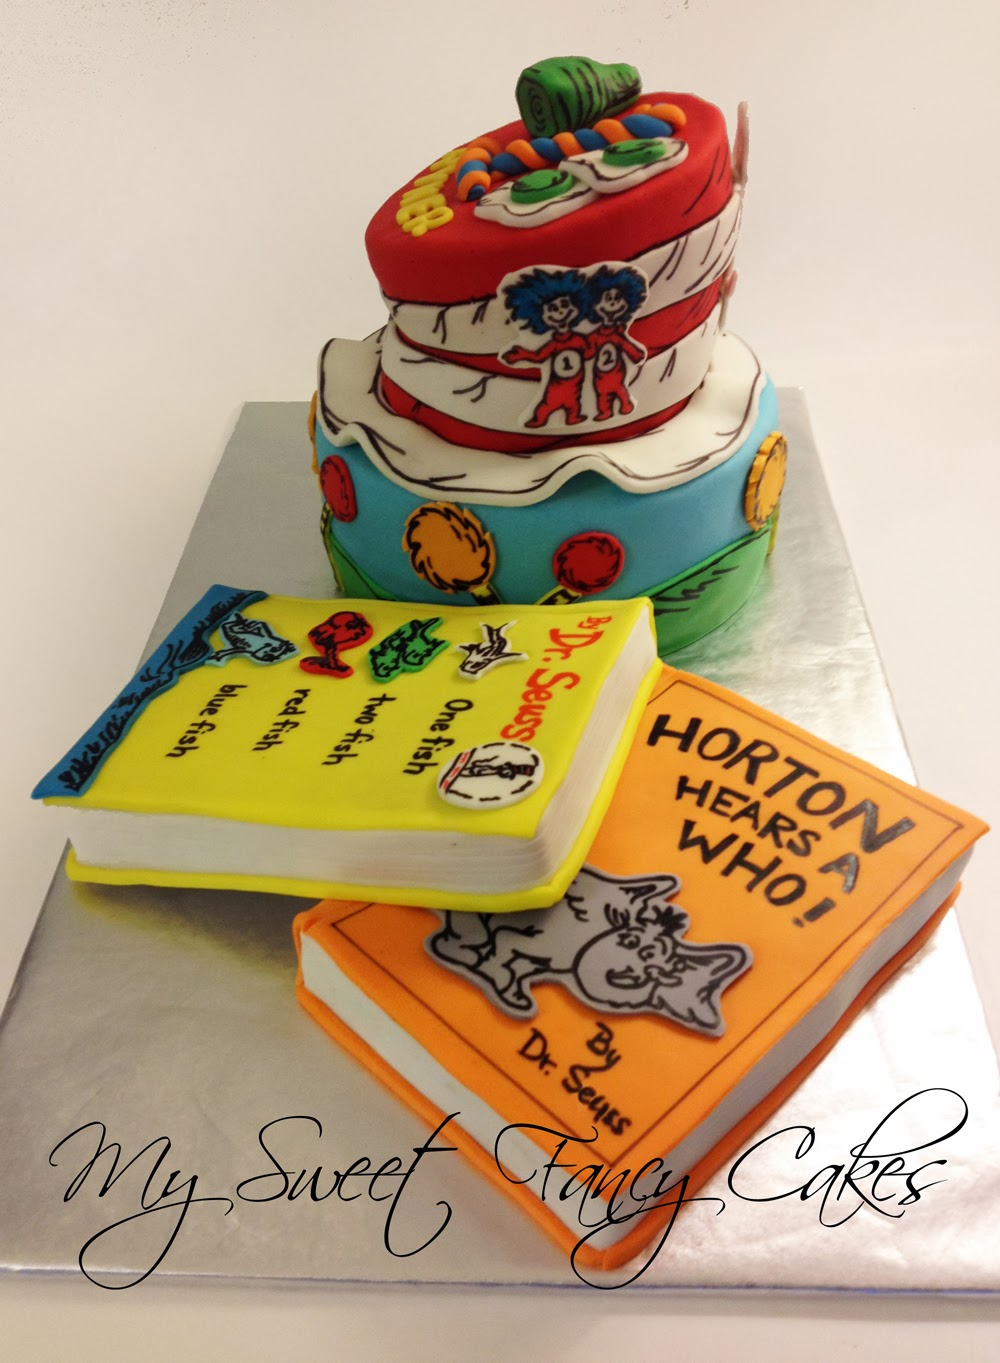 My Sweet Fancy Cakes Dr Seuss Cake With Books